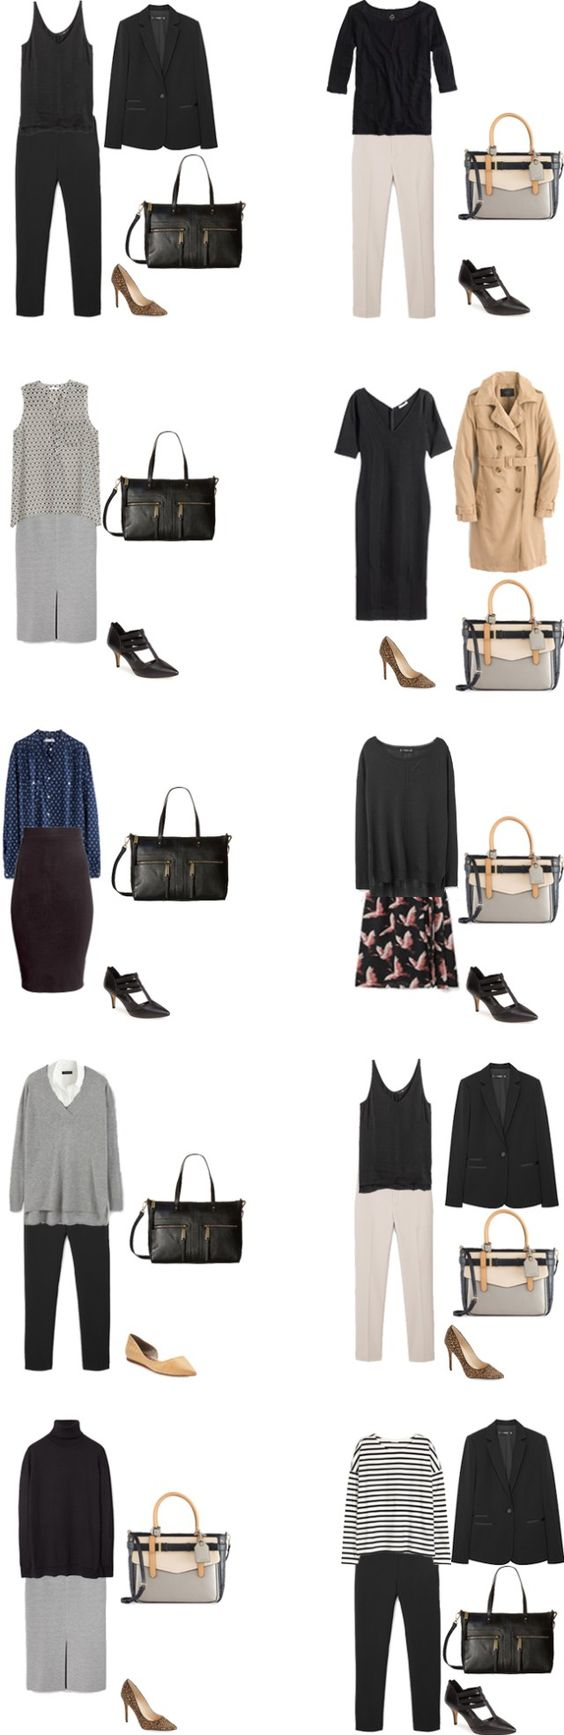 Basic Work Capsule Outfits 31-40 #capsulewardrobe #workwardrobe #workwear #capsule: